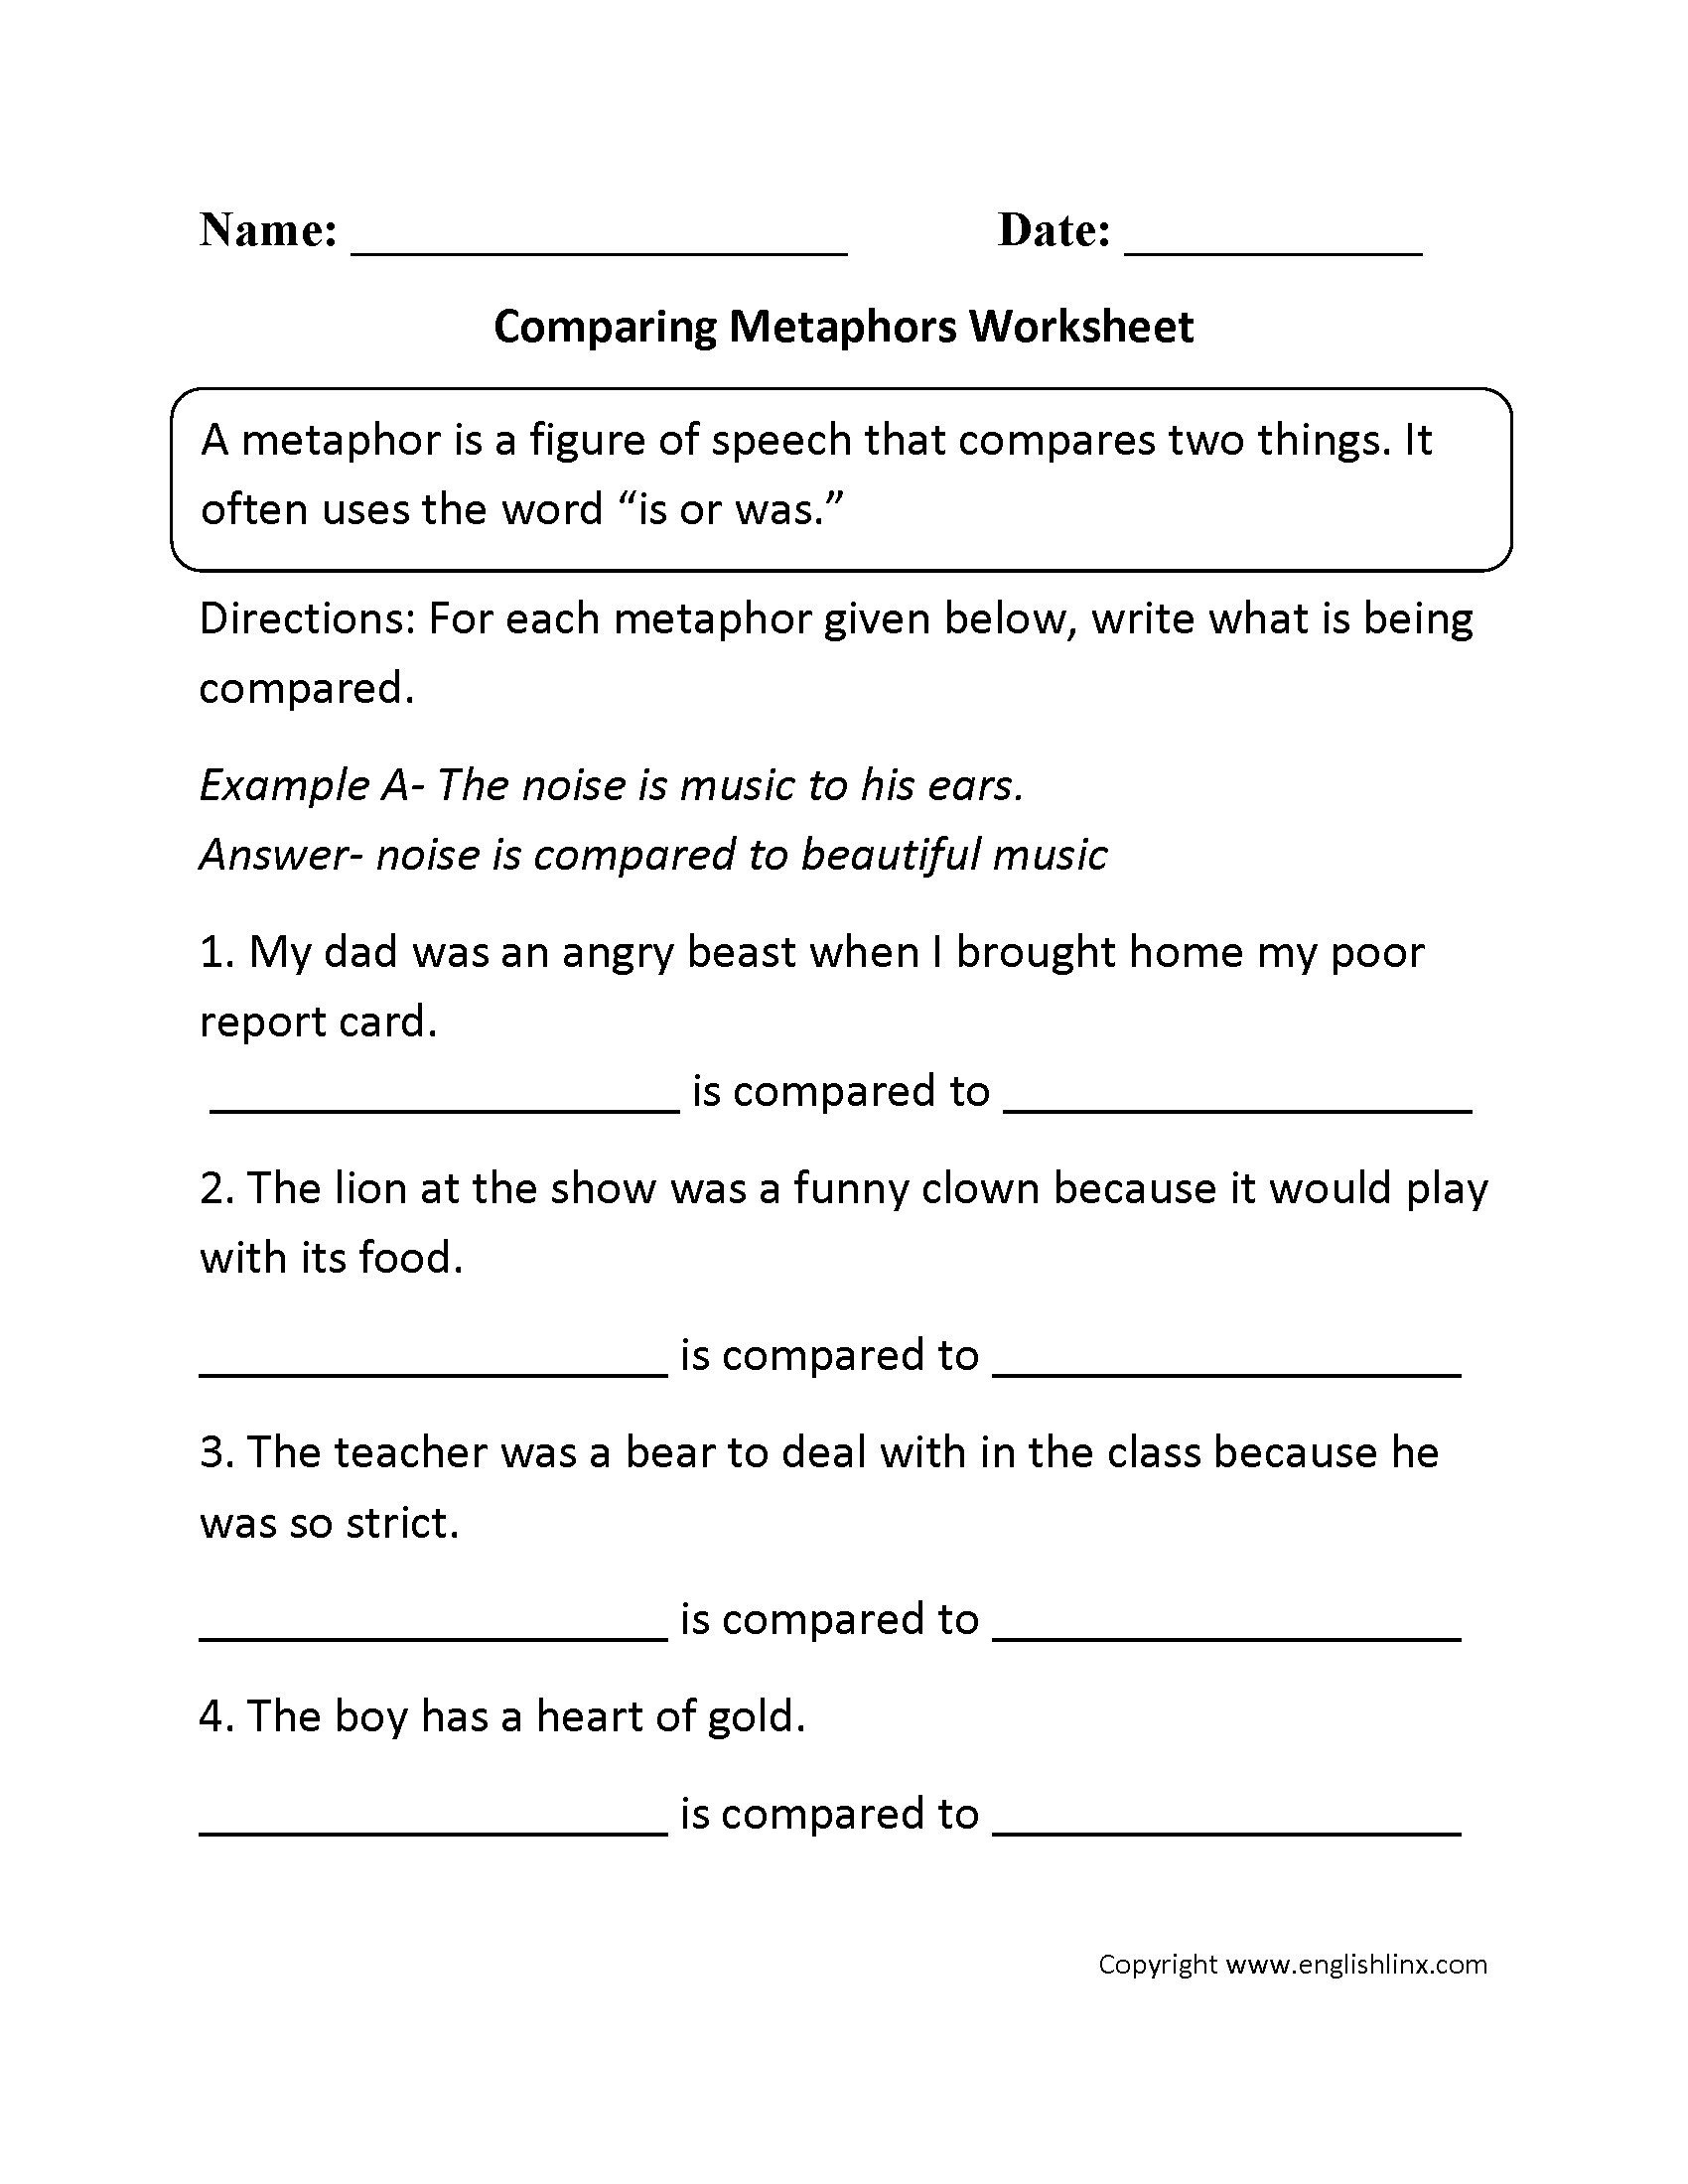 worksheet Metaphors And Similes Worksheets englishlinx com metaphors worksheets comparing worksheet